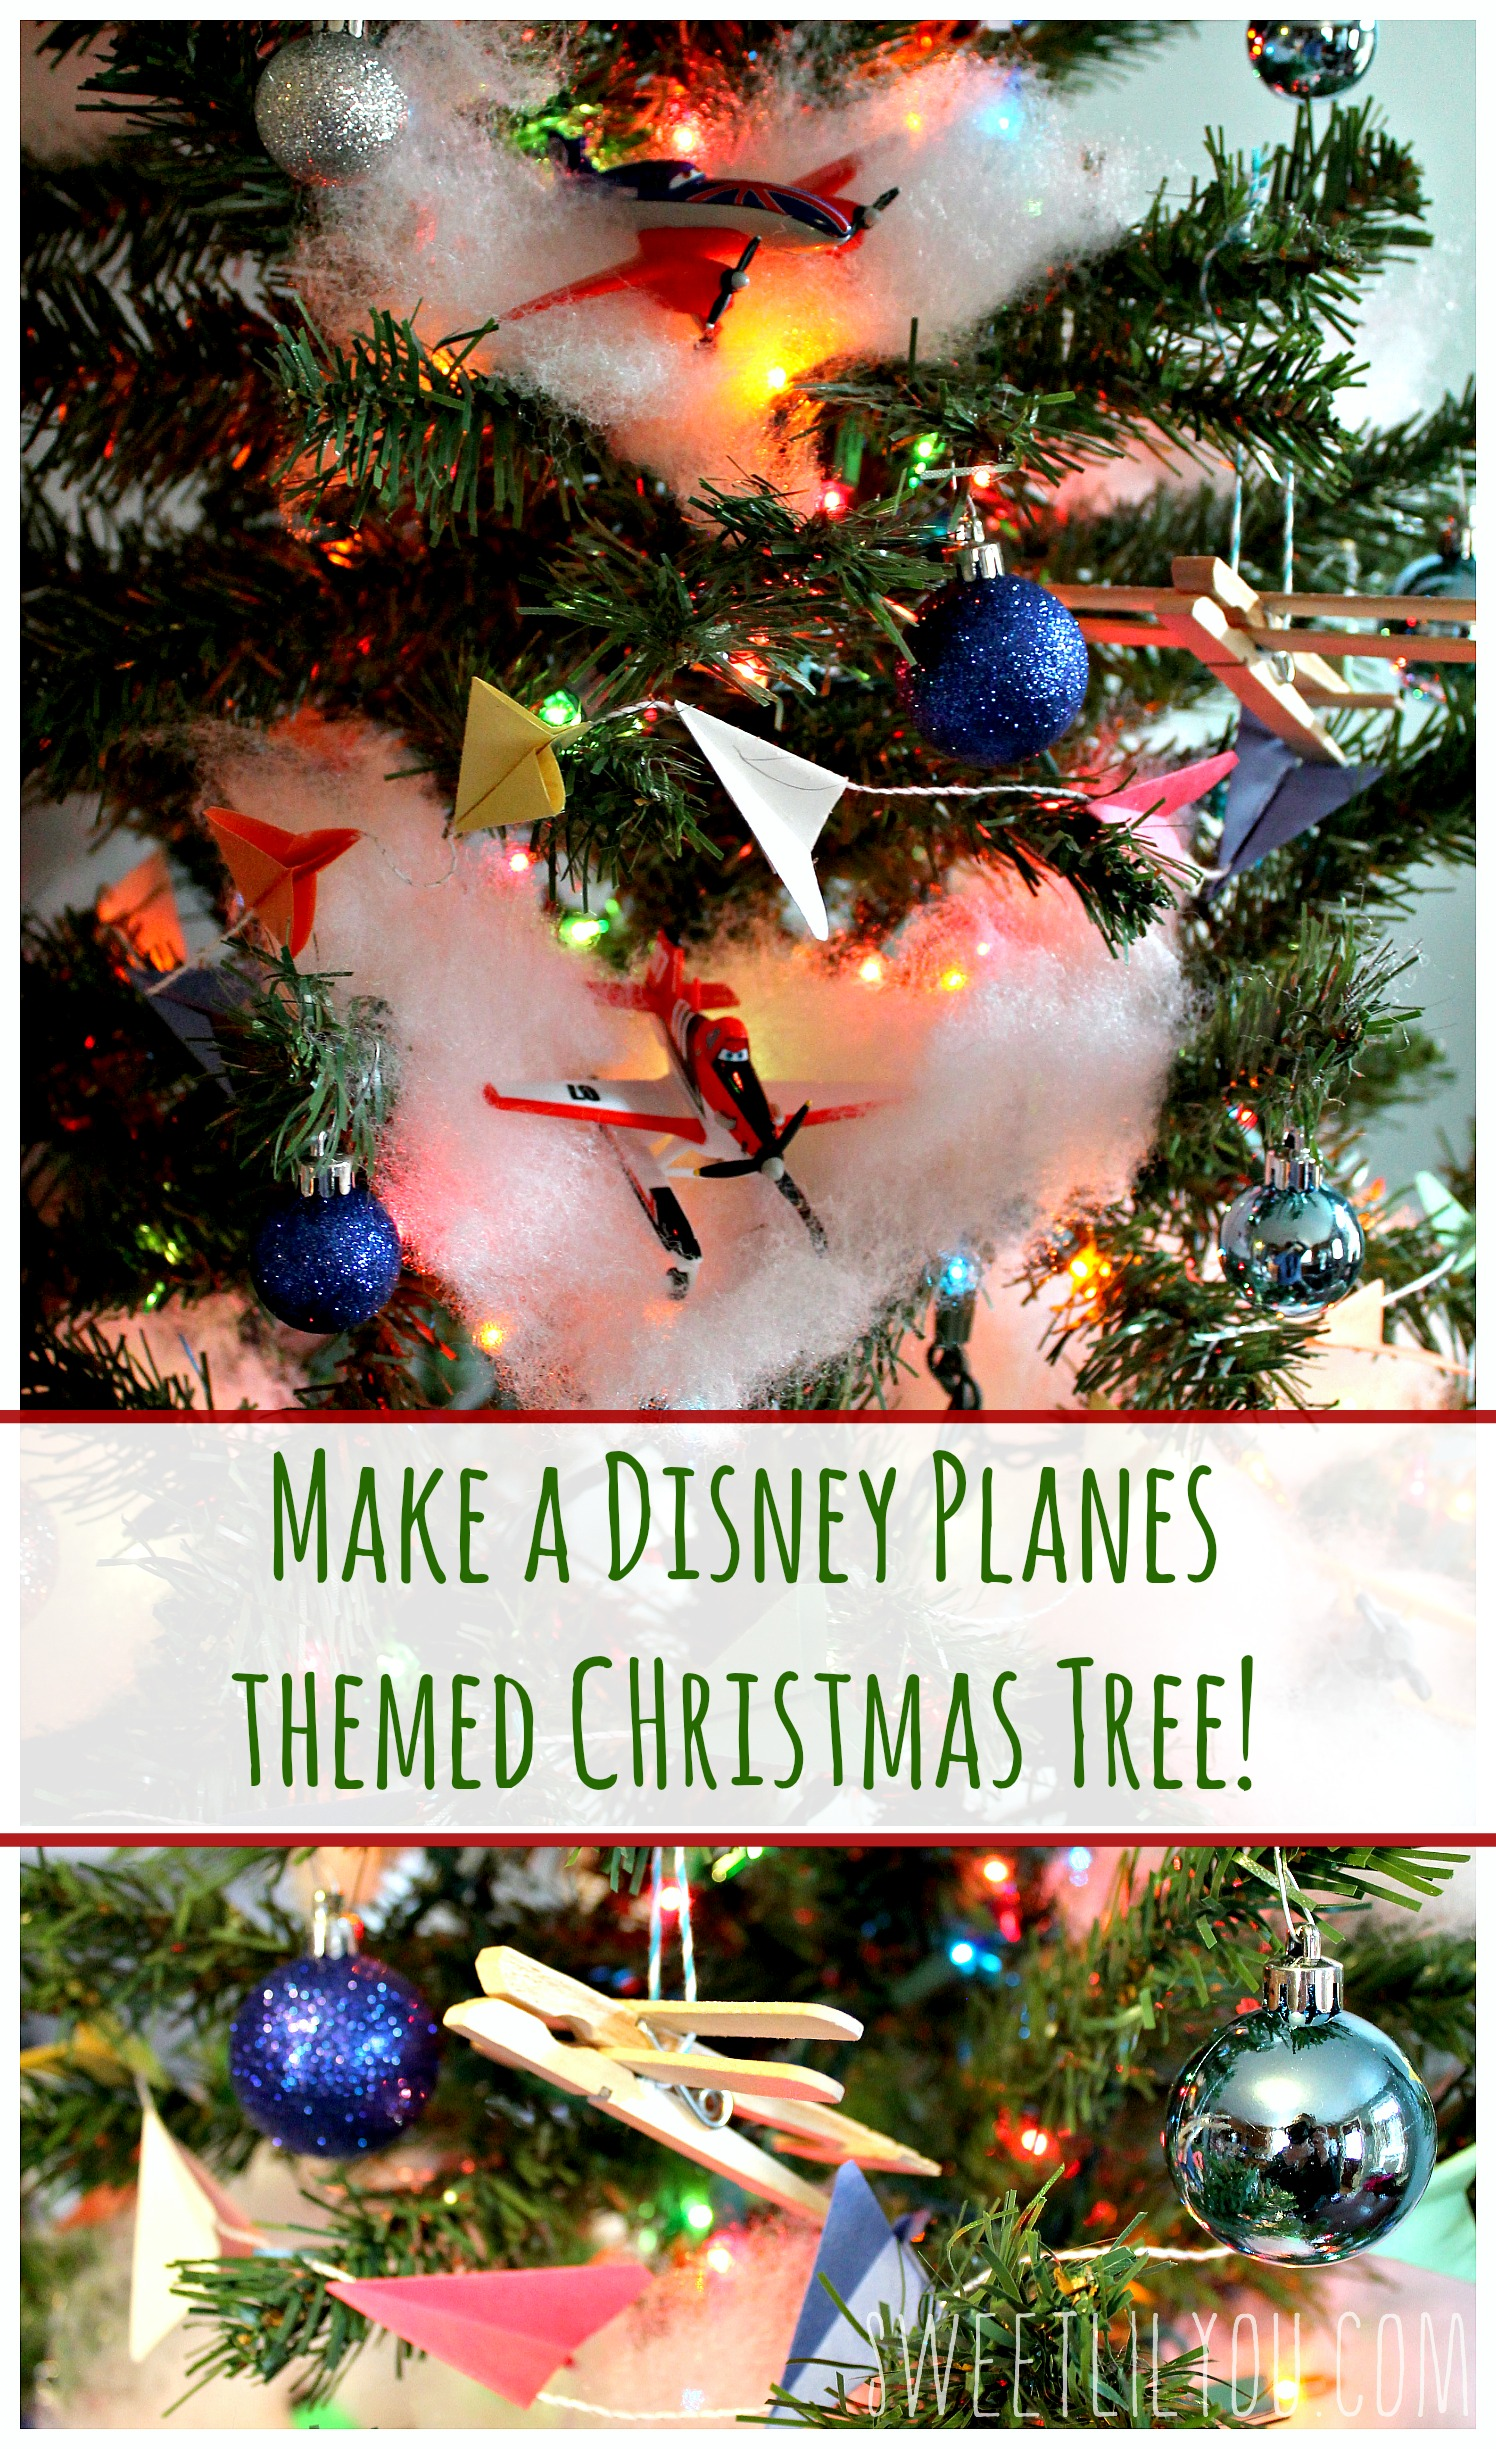 Disney Planes Themed Christmas Tree Planestotherescue Ad Sweet Lil You